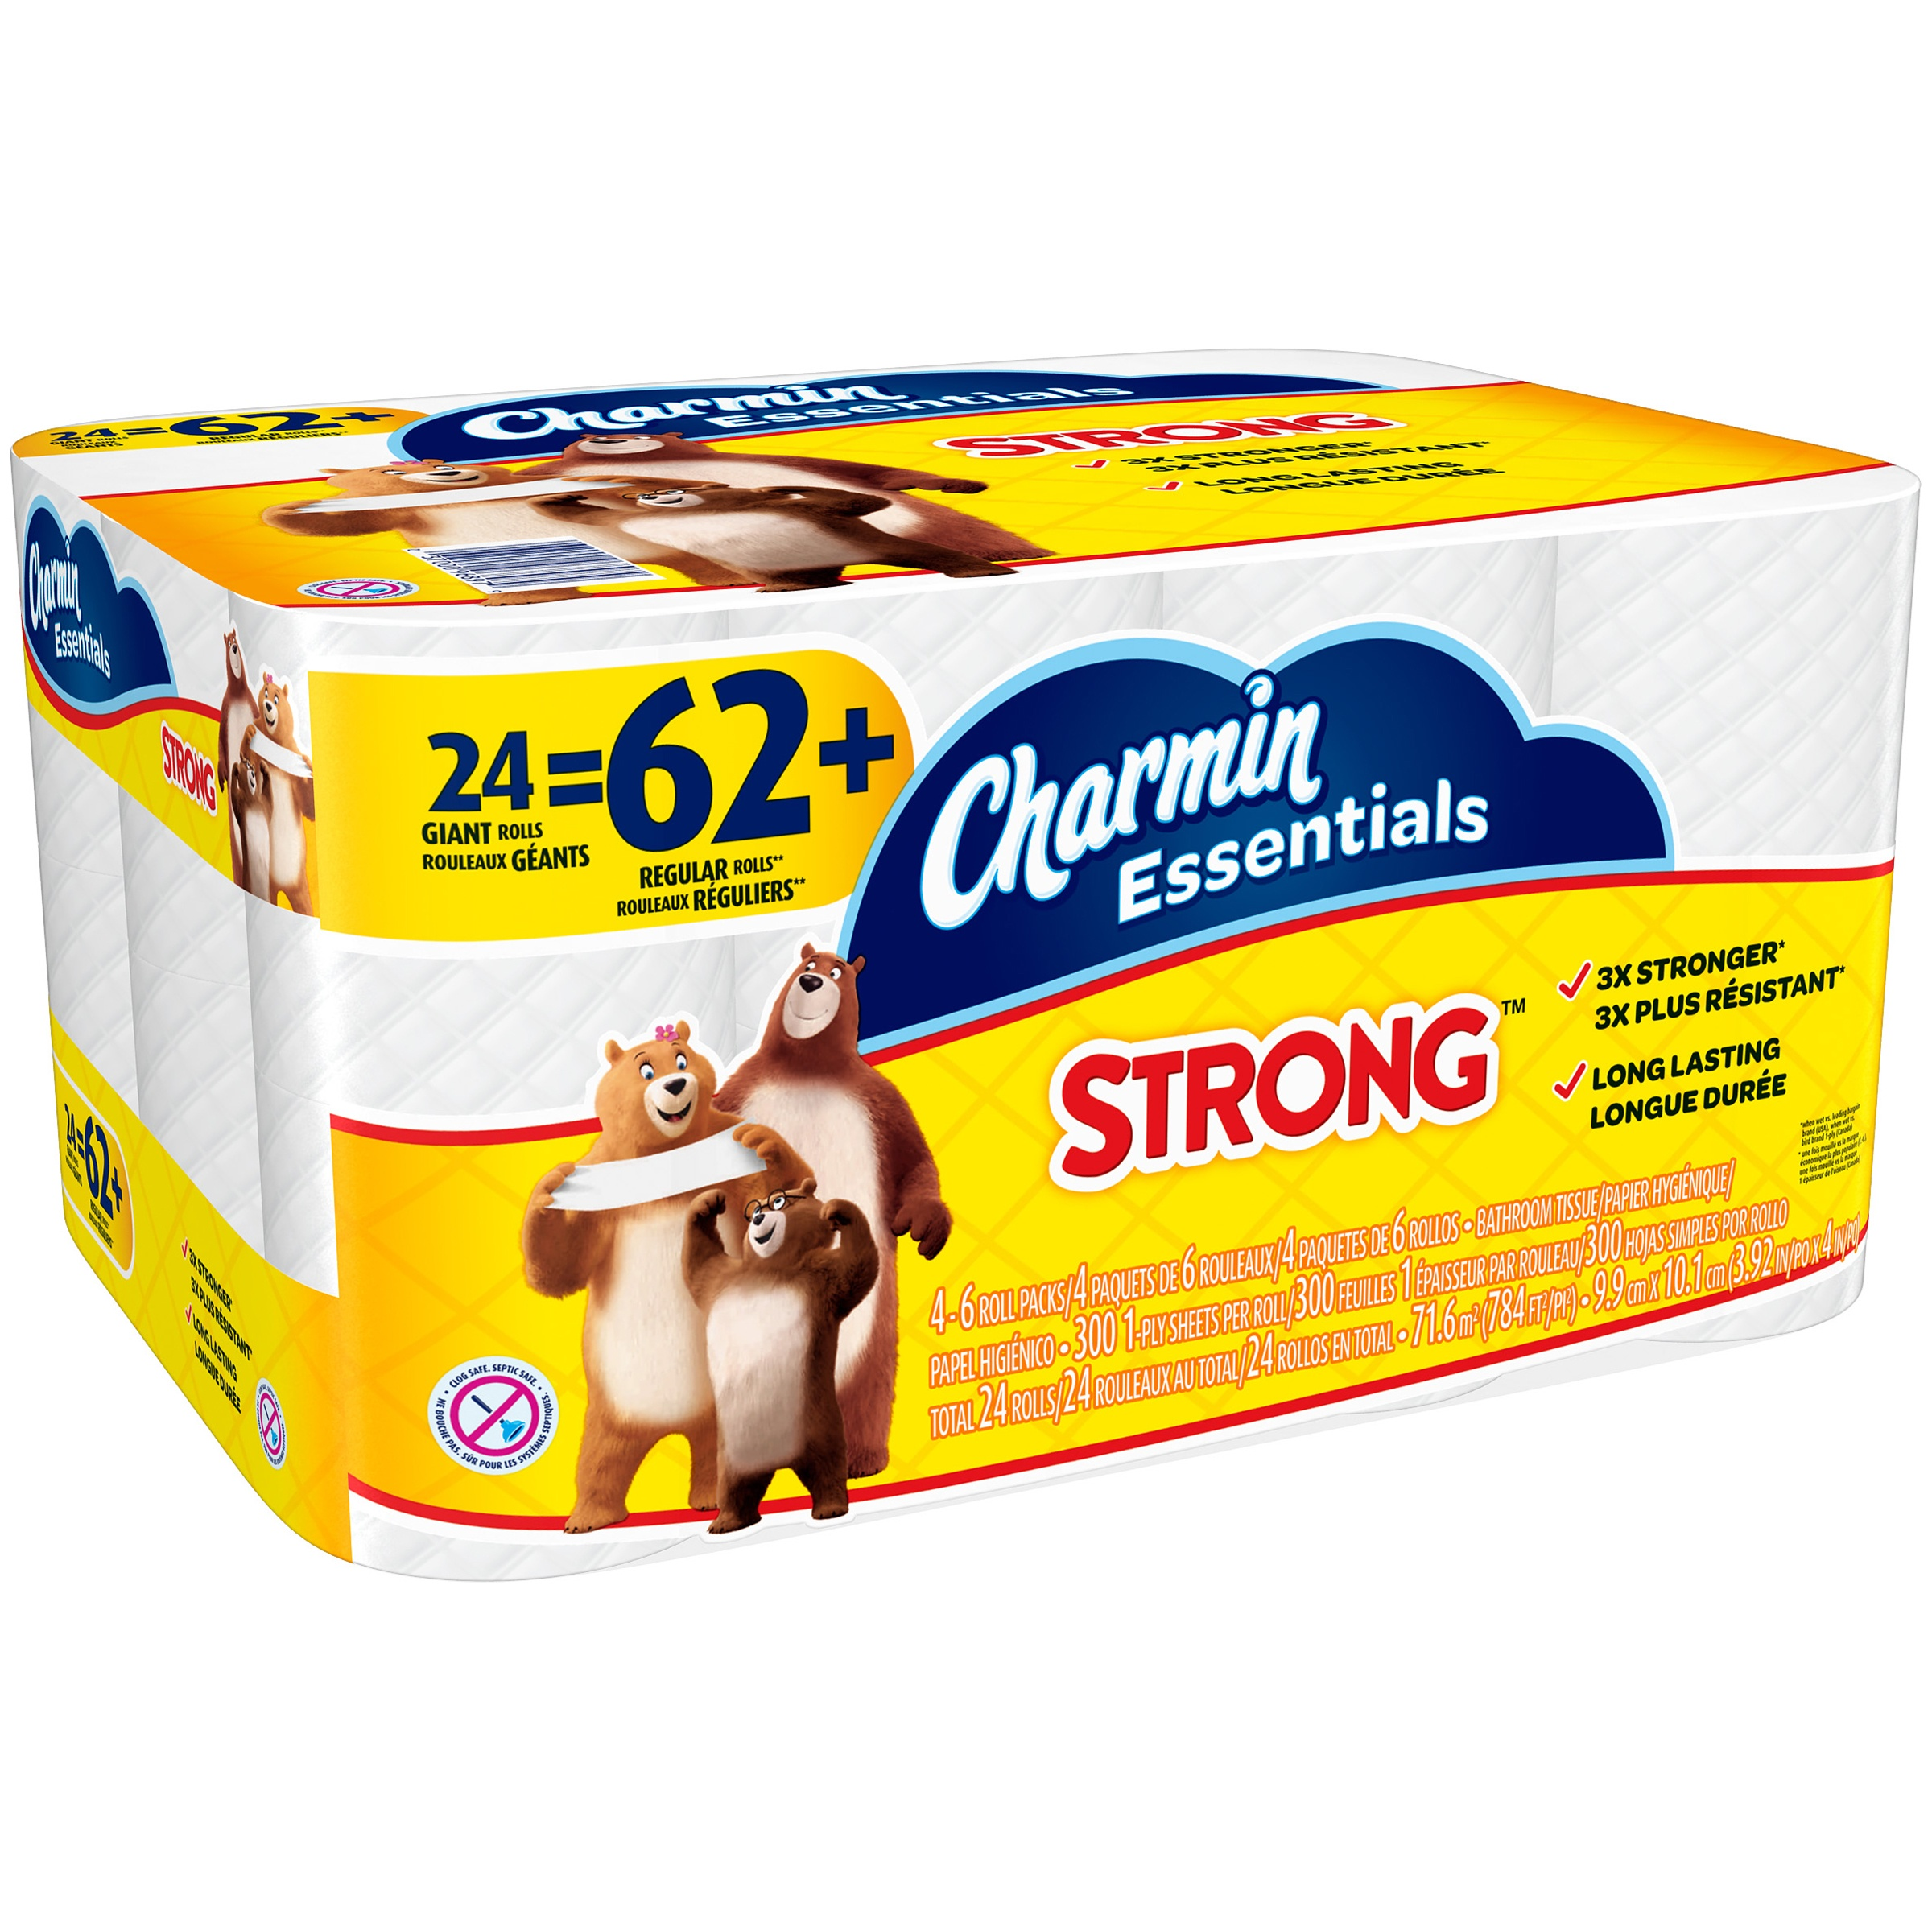 Charmin Essentials Strong Toilet Paper 24 Giant Rolls